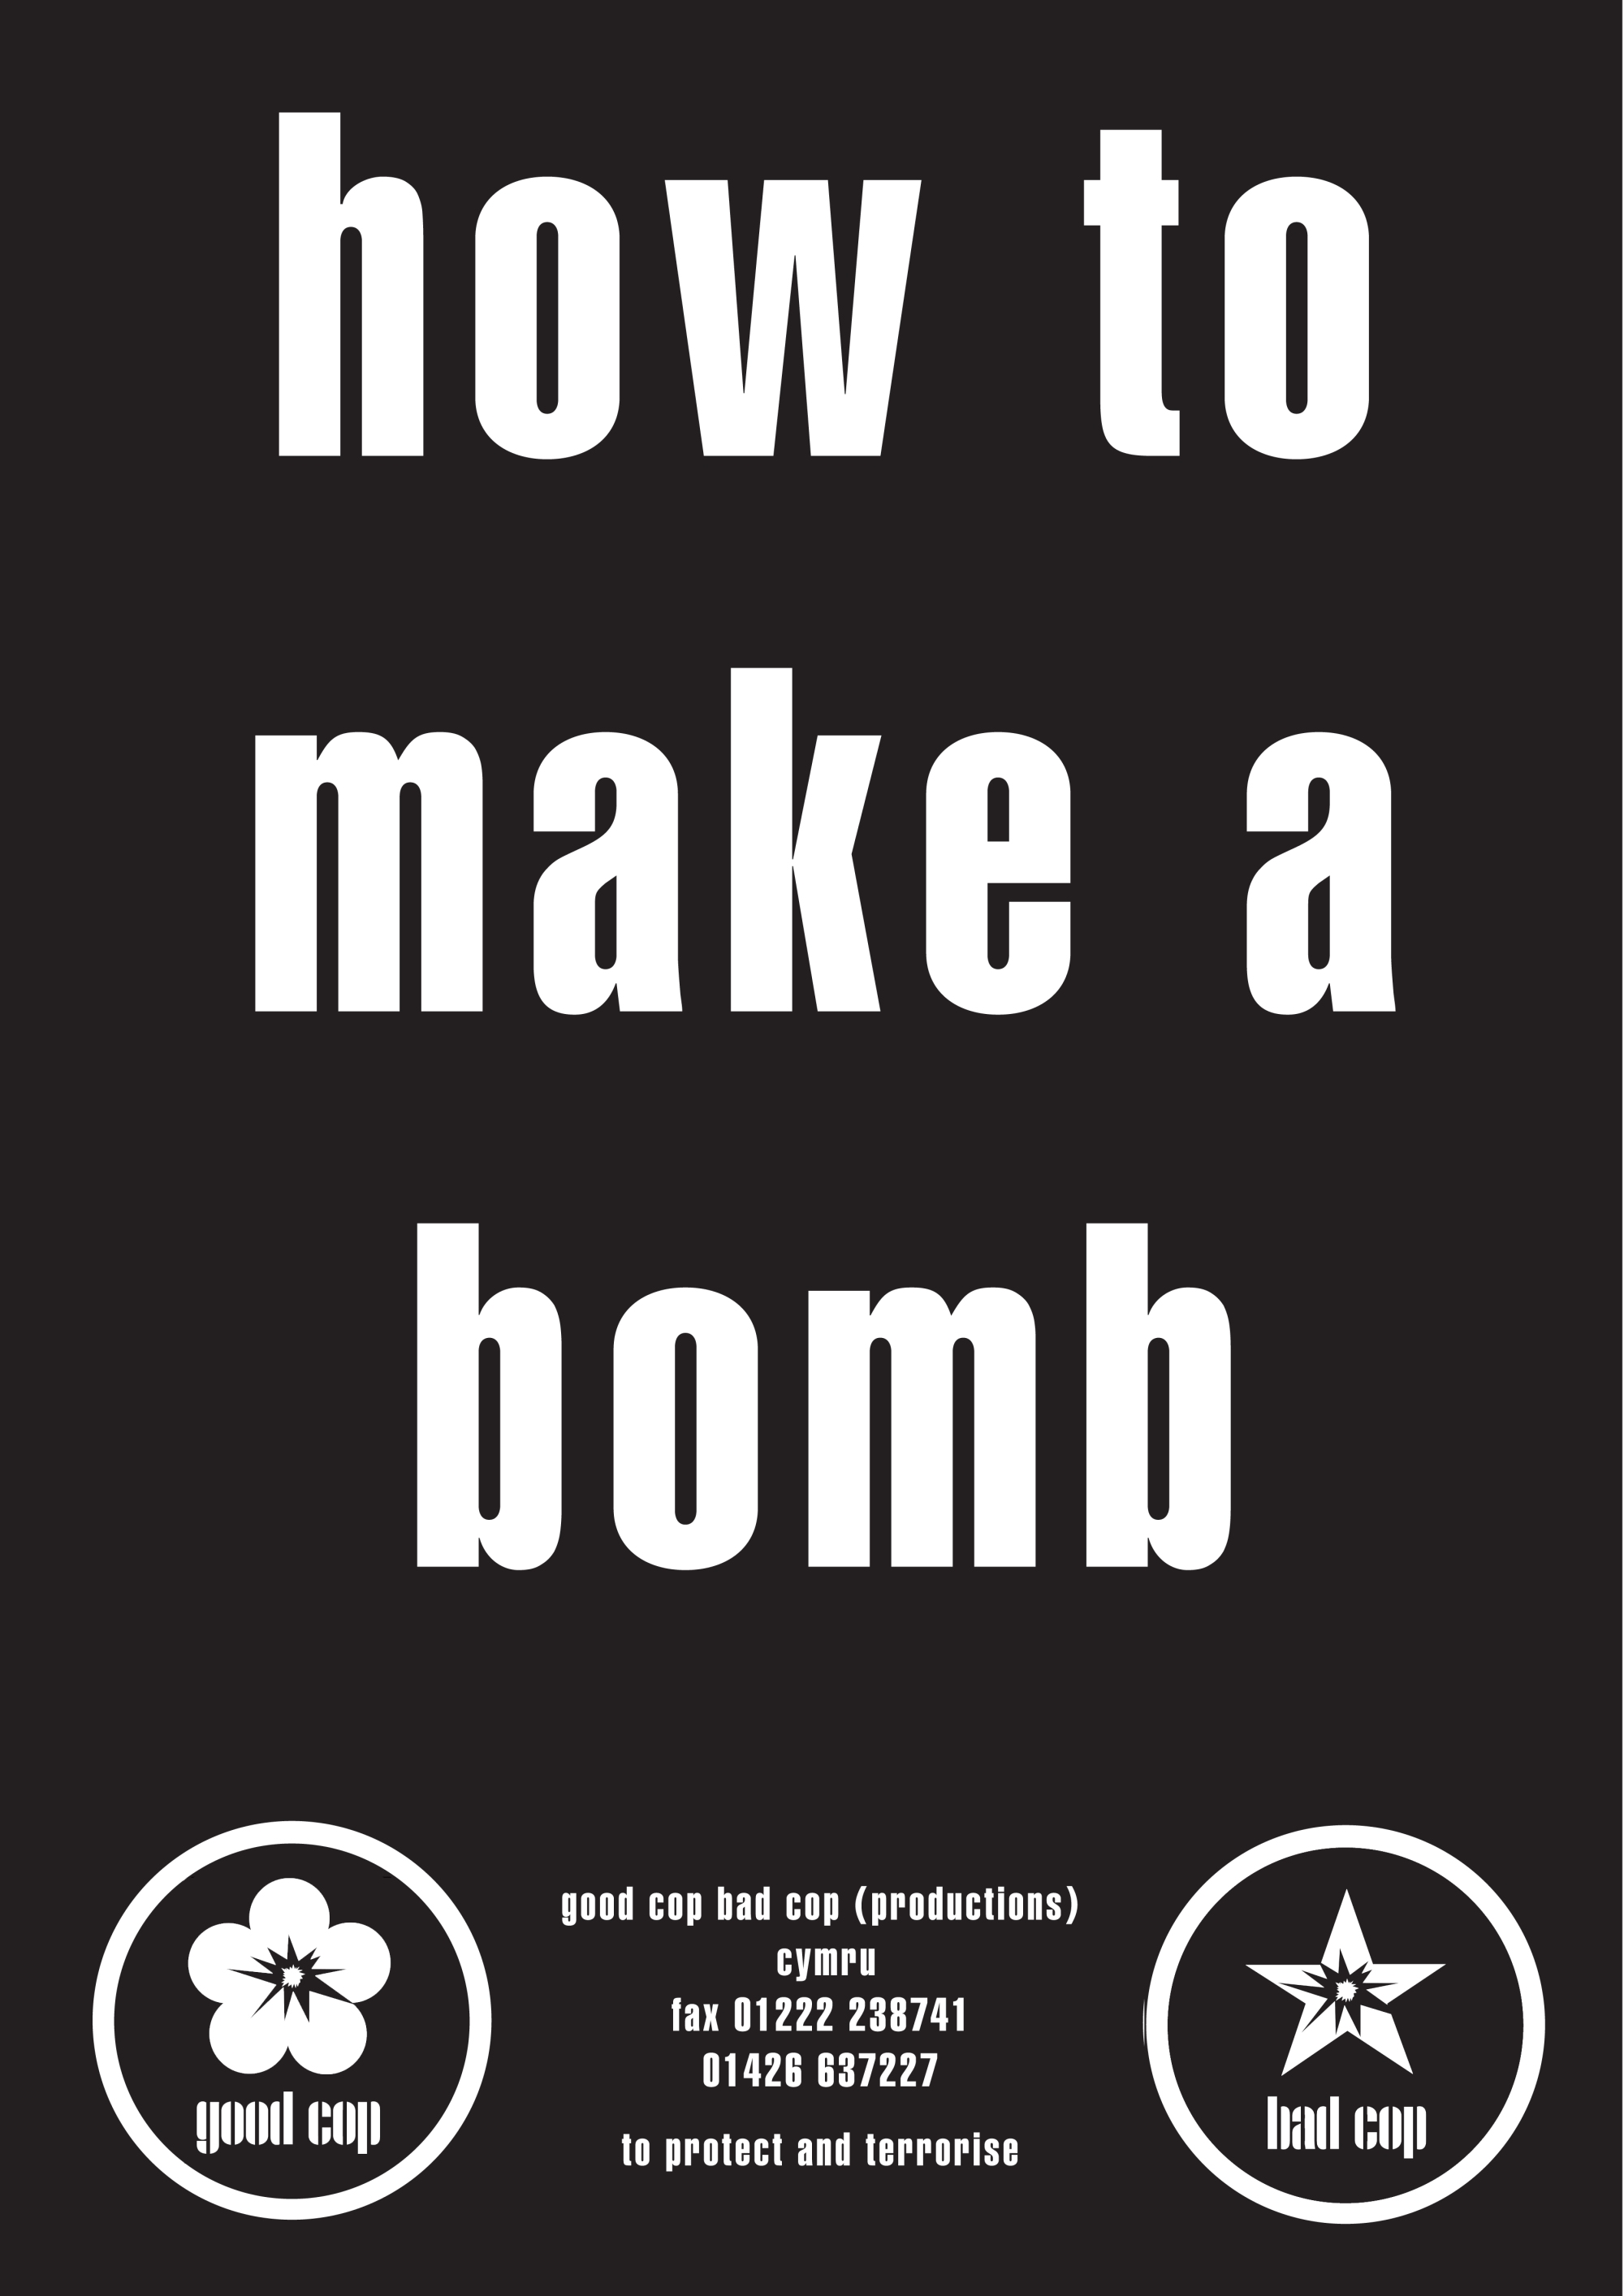 how to make a bomb flyer copy 2